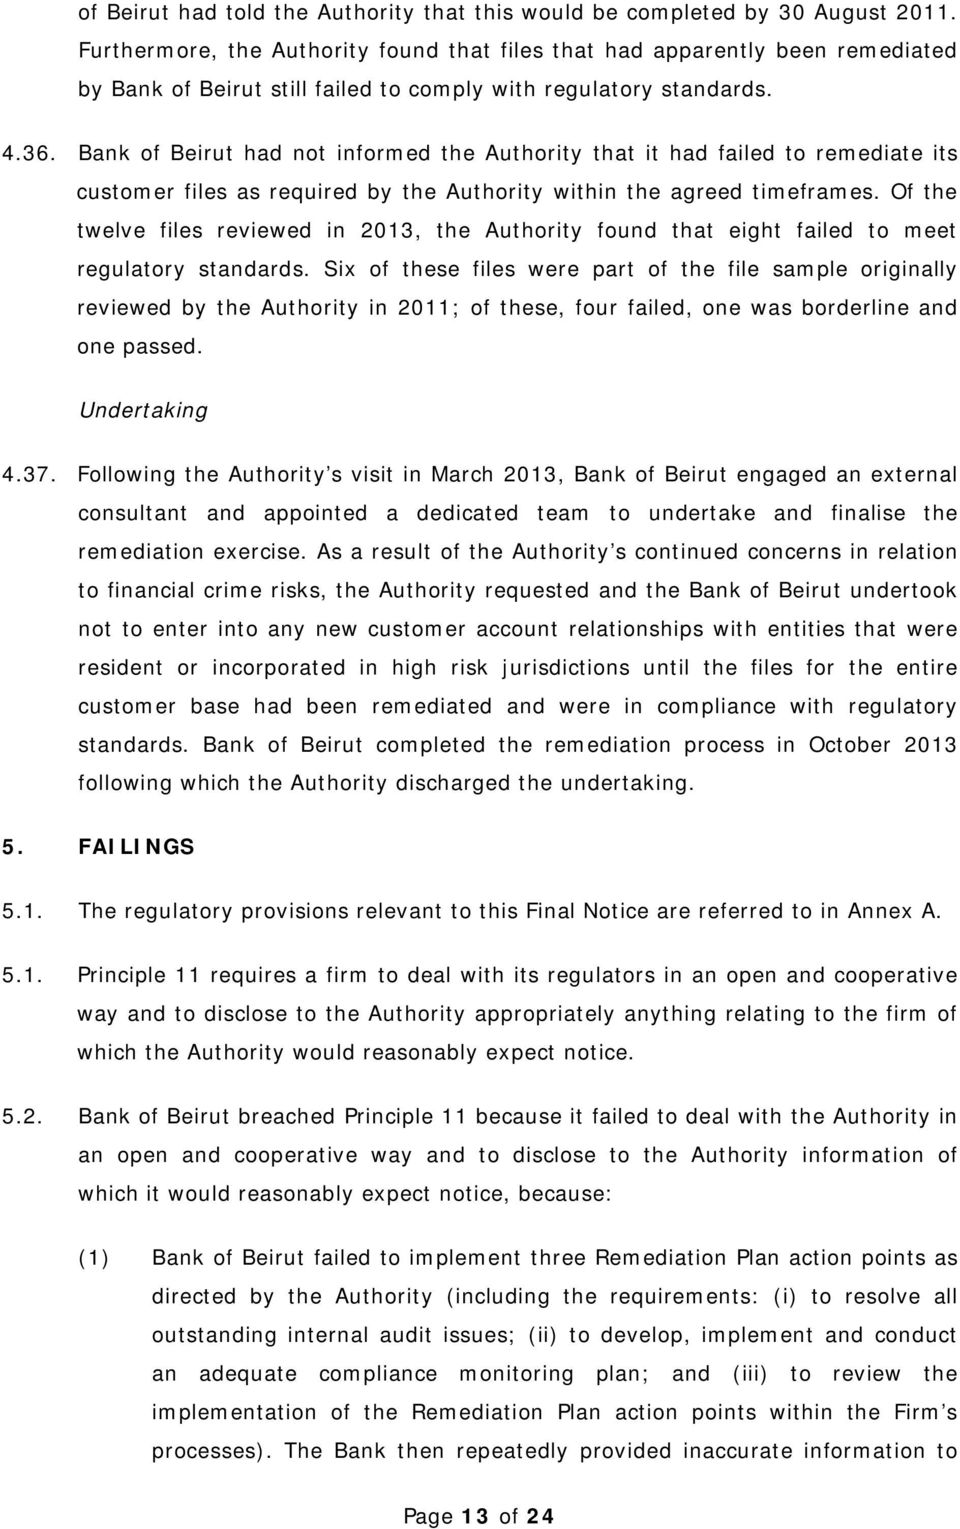 Bank of Beirut had not informed the Authority that it had failed to remediate its customer files as required by the Authority within the agreed timeframes.